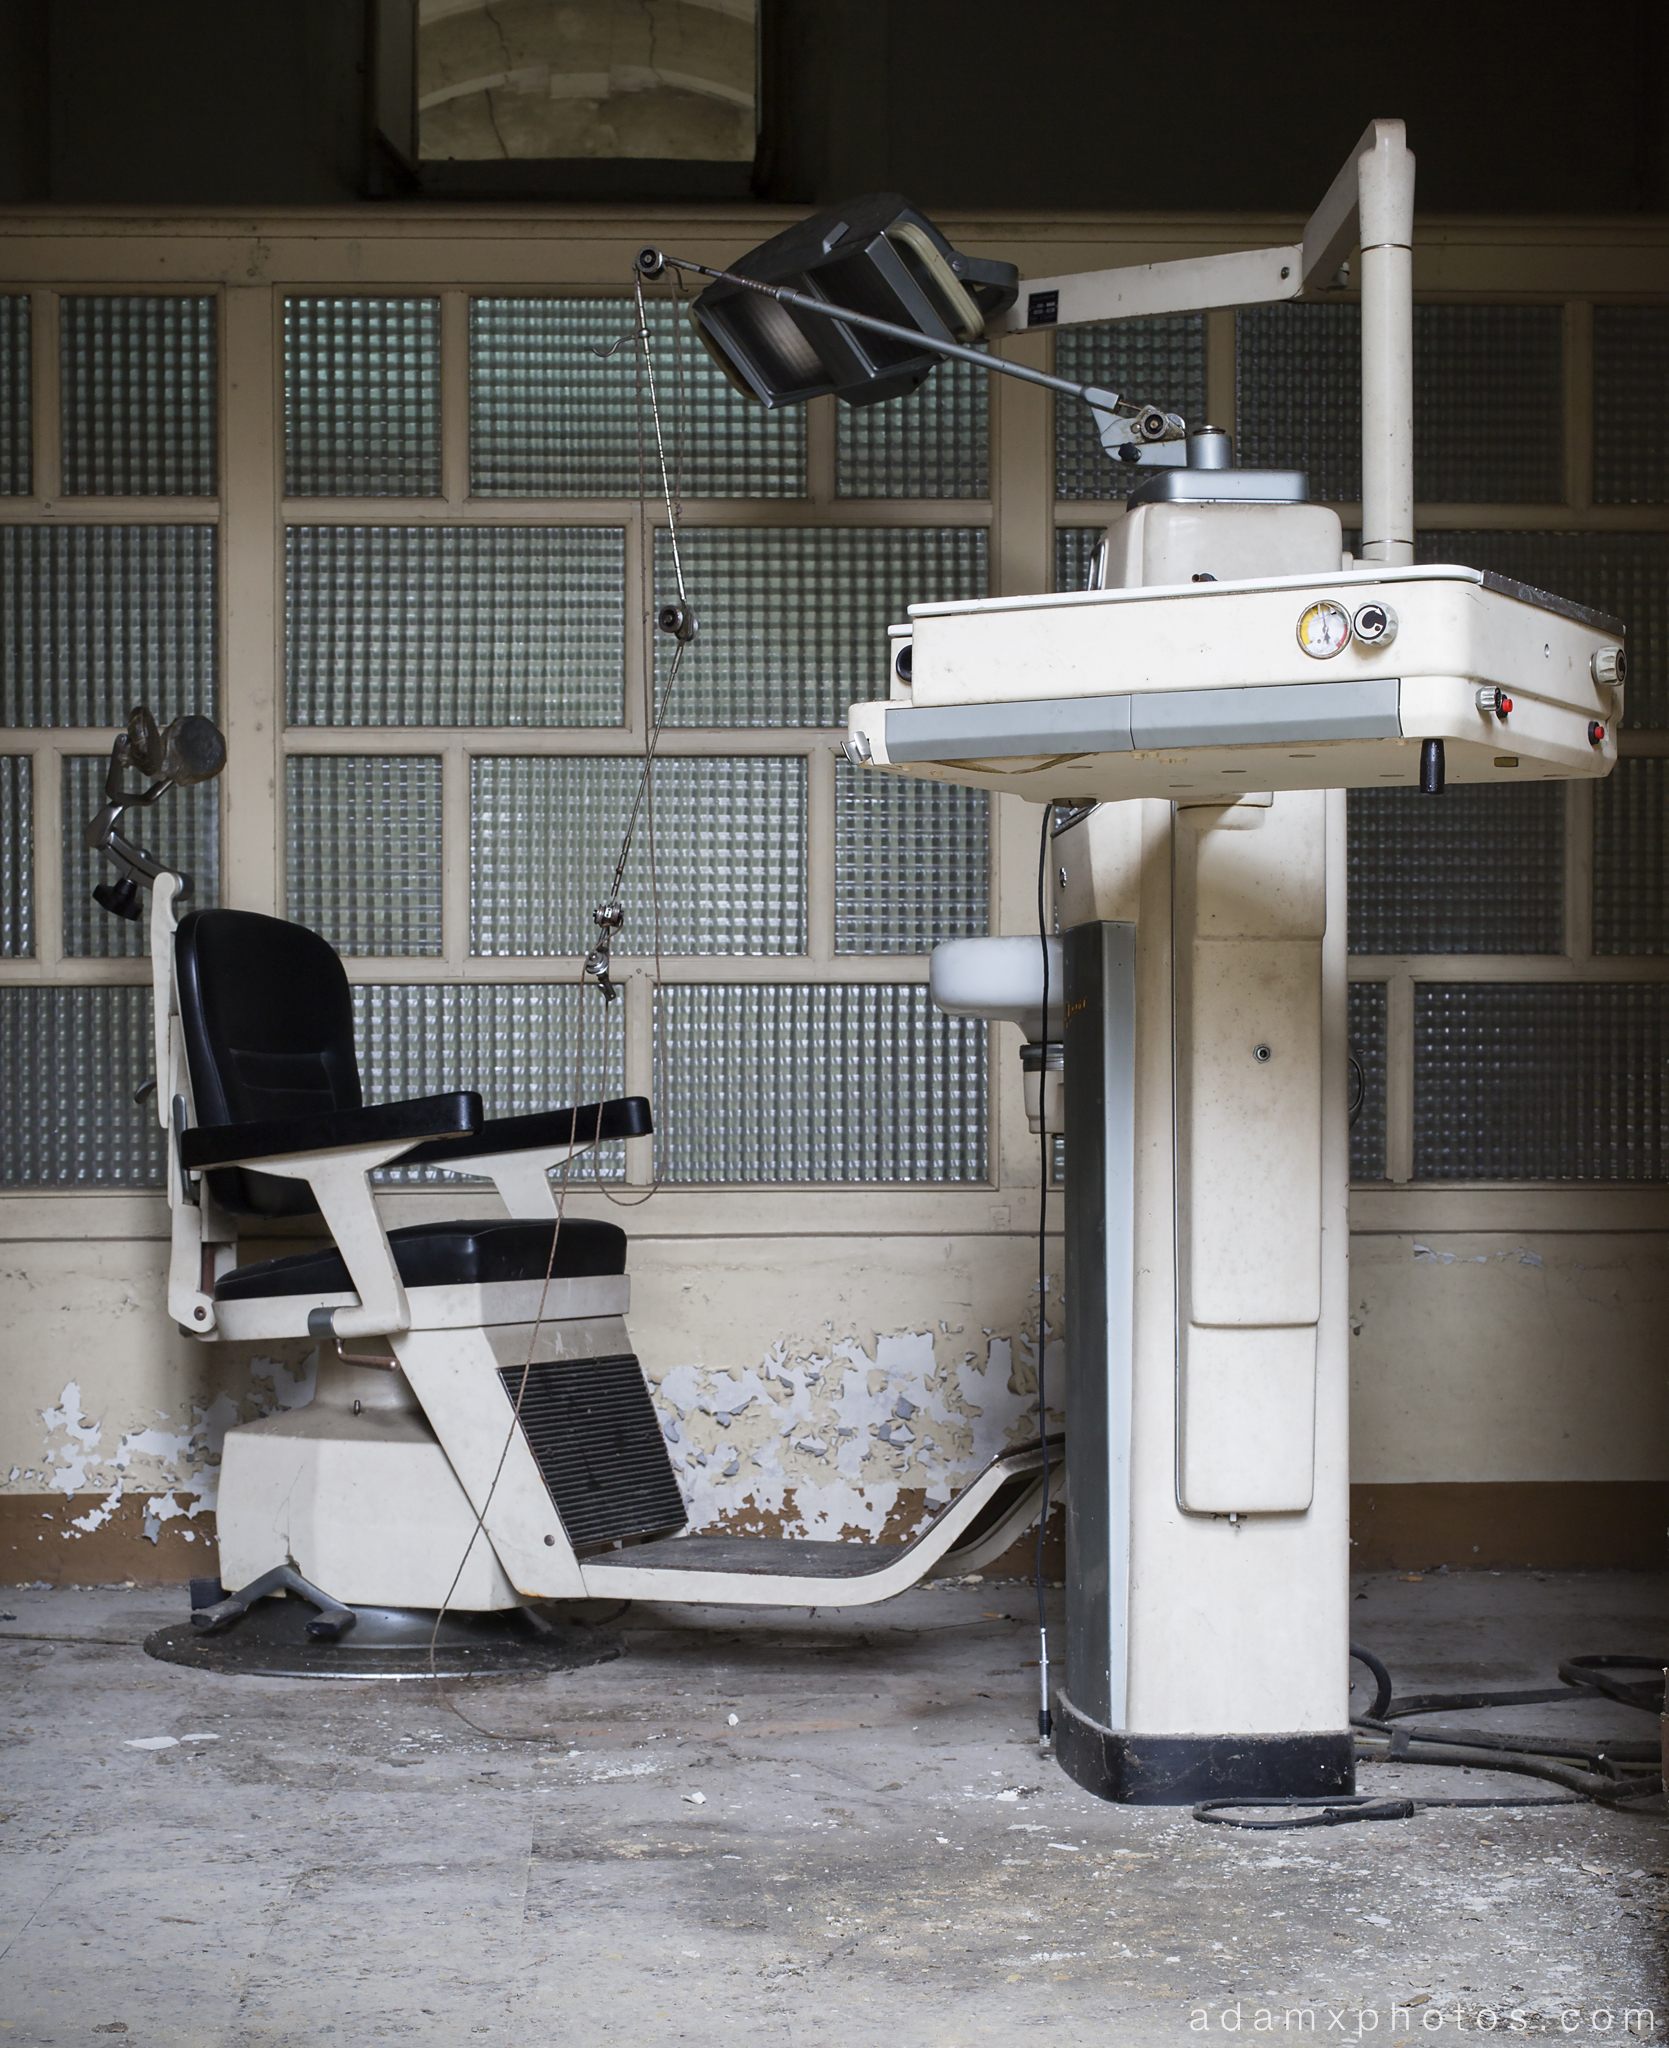 Manicomio di R Dr Rossetti Rosetti doctor Urbex Adam X Urban Exploration dentist dentist's chair medical photo photos report decay detail UE abandoned derelict unused empty disused decay decayed decaying grimy grime